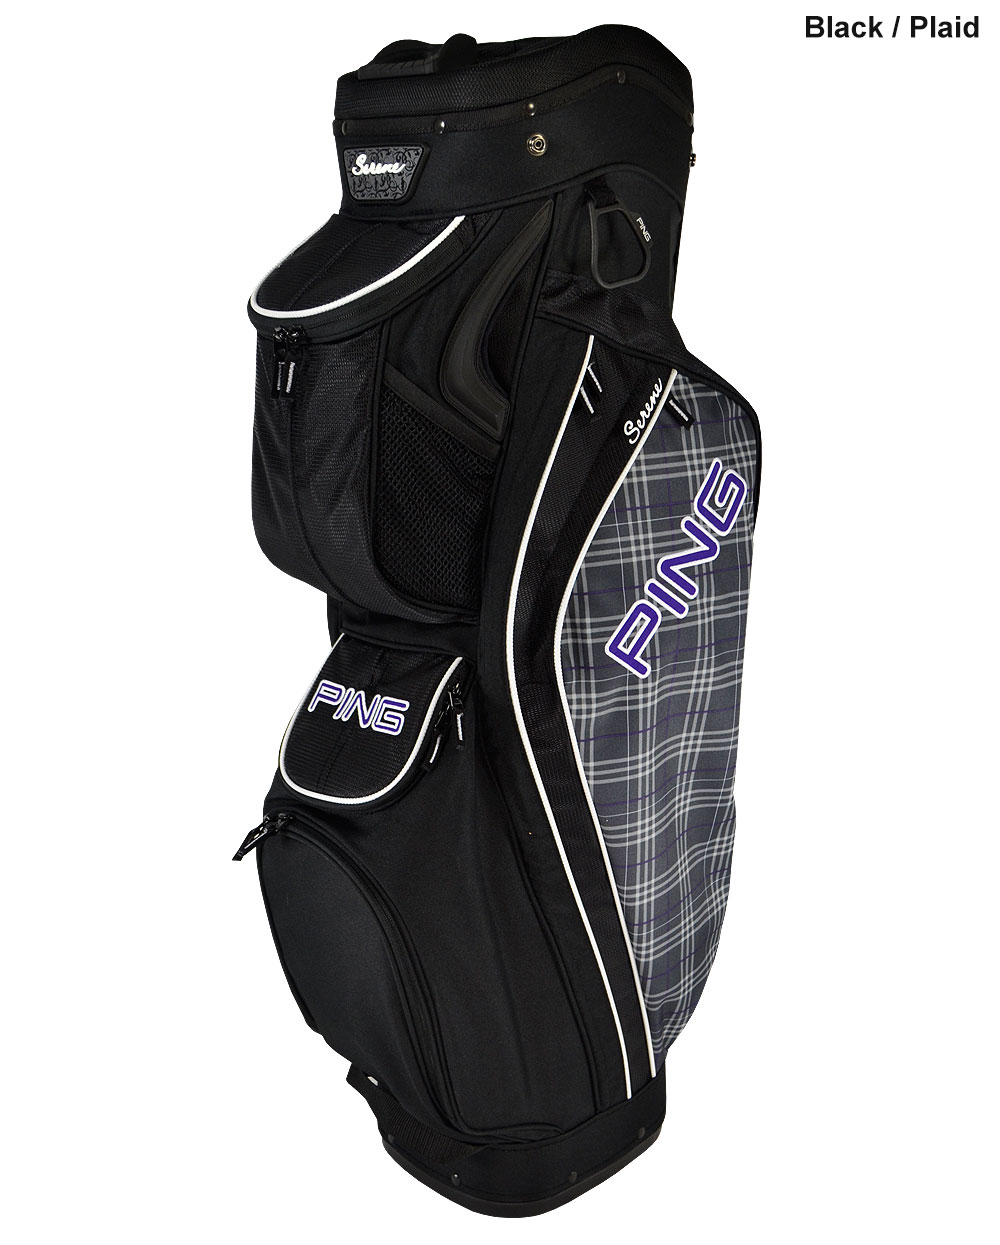 Amazing December 1, 2011  Nike Golf Is Introducing Two New Golf Bags To Its Successful Nike Brassie II Cart Bag Collection For Women In 2012  There Is A Grey Plaid Available The Nike Brassie II Cart Bag Incorporates Key Features And Benefits